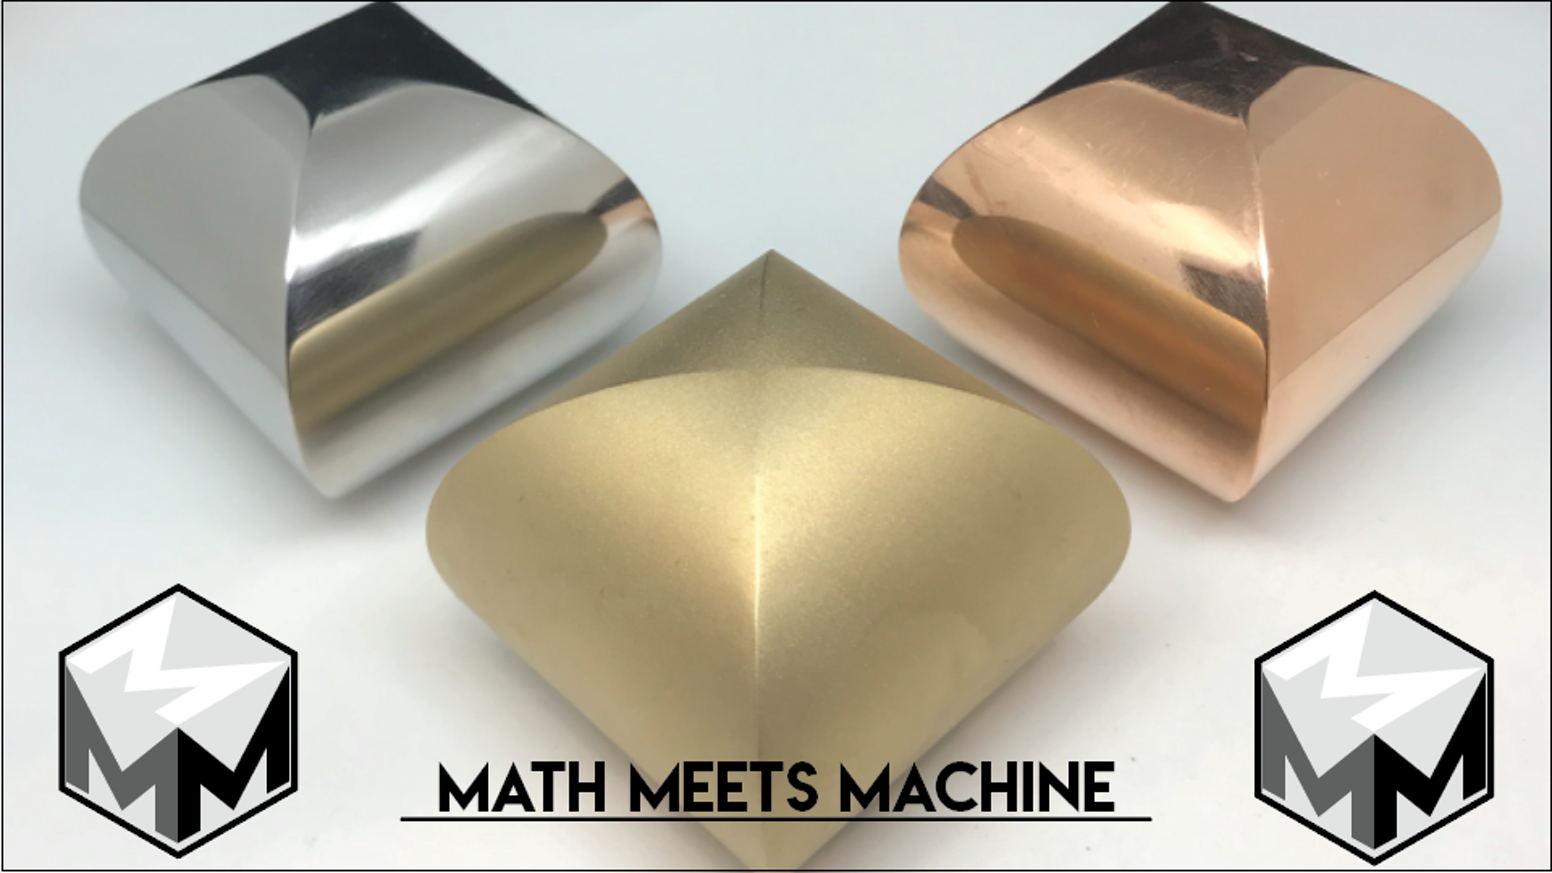 We are back with Steinmetz Solids, Meissner Tetrahedrons, and Mobius Strips CNC machined to be part of our beautiful math collection.